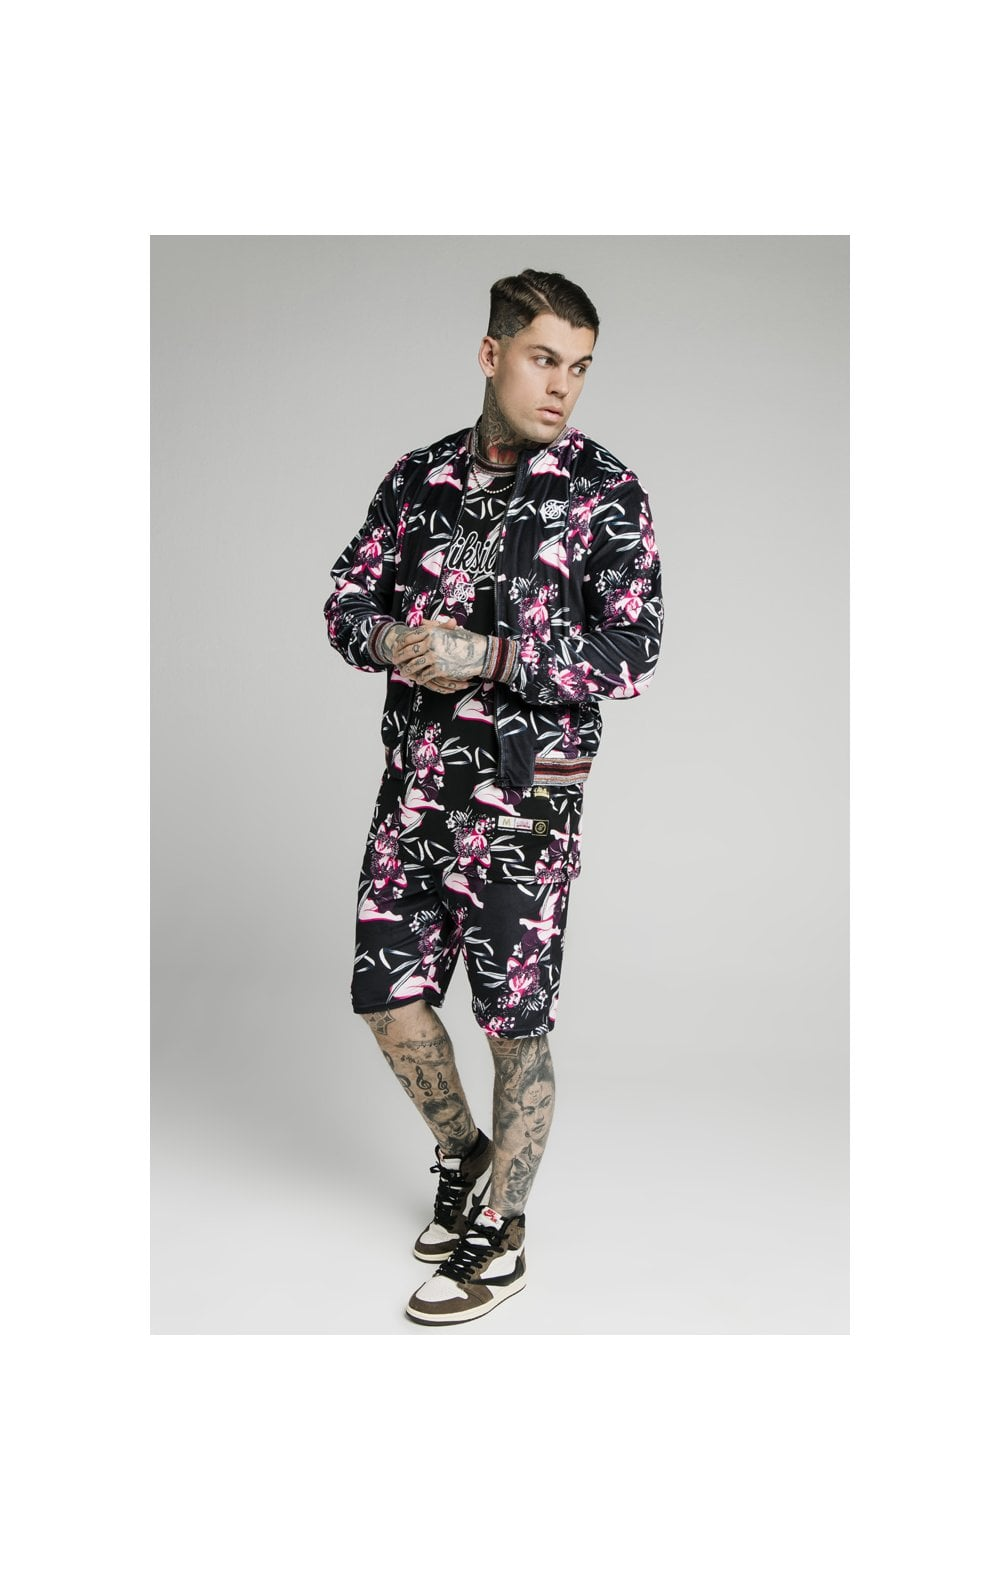 Load image into Gallery viewer, SikSilk Velour Tropics Bomber - Black & Tropics (2)